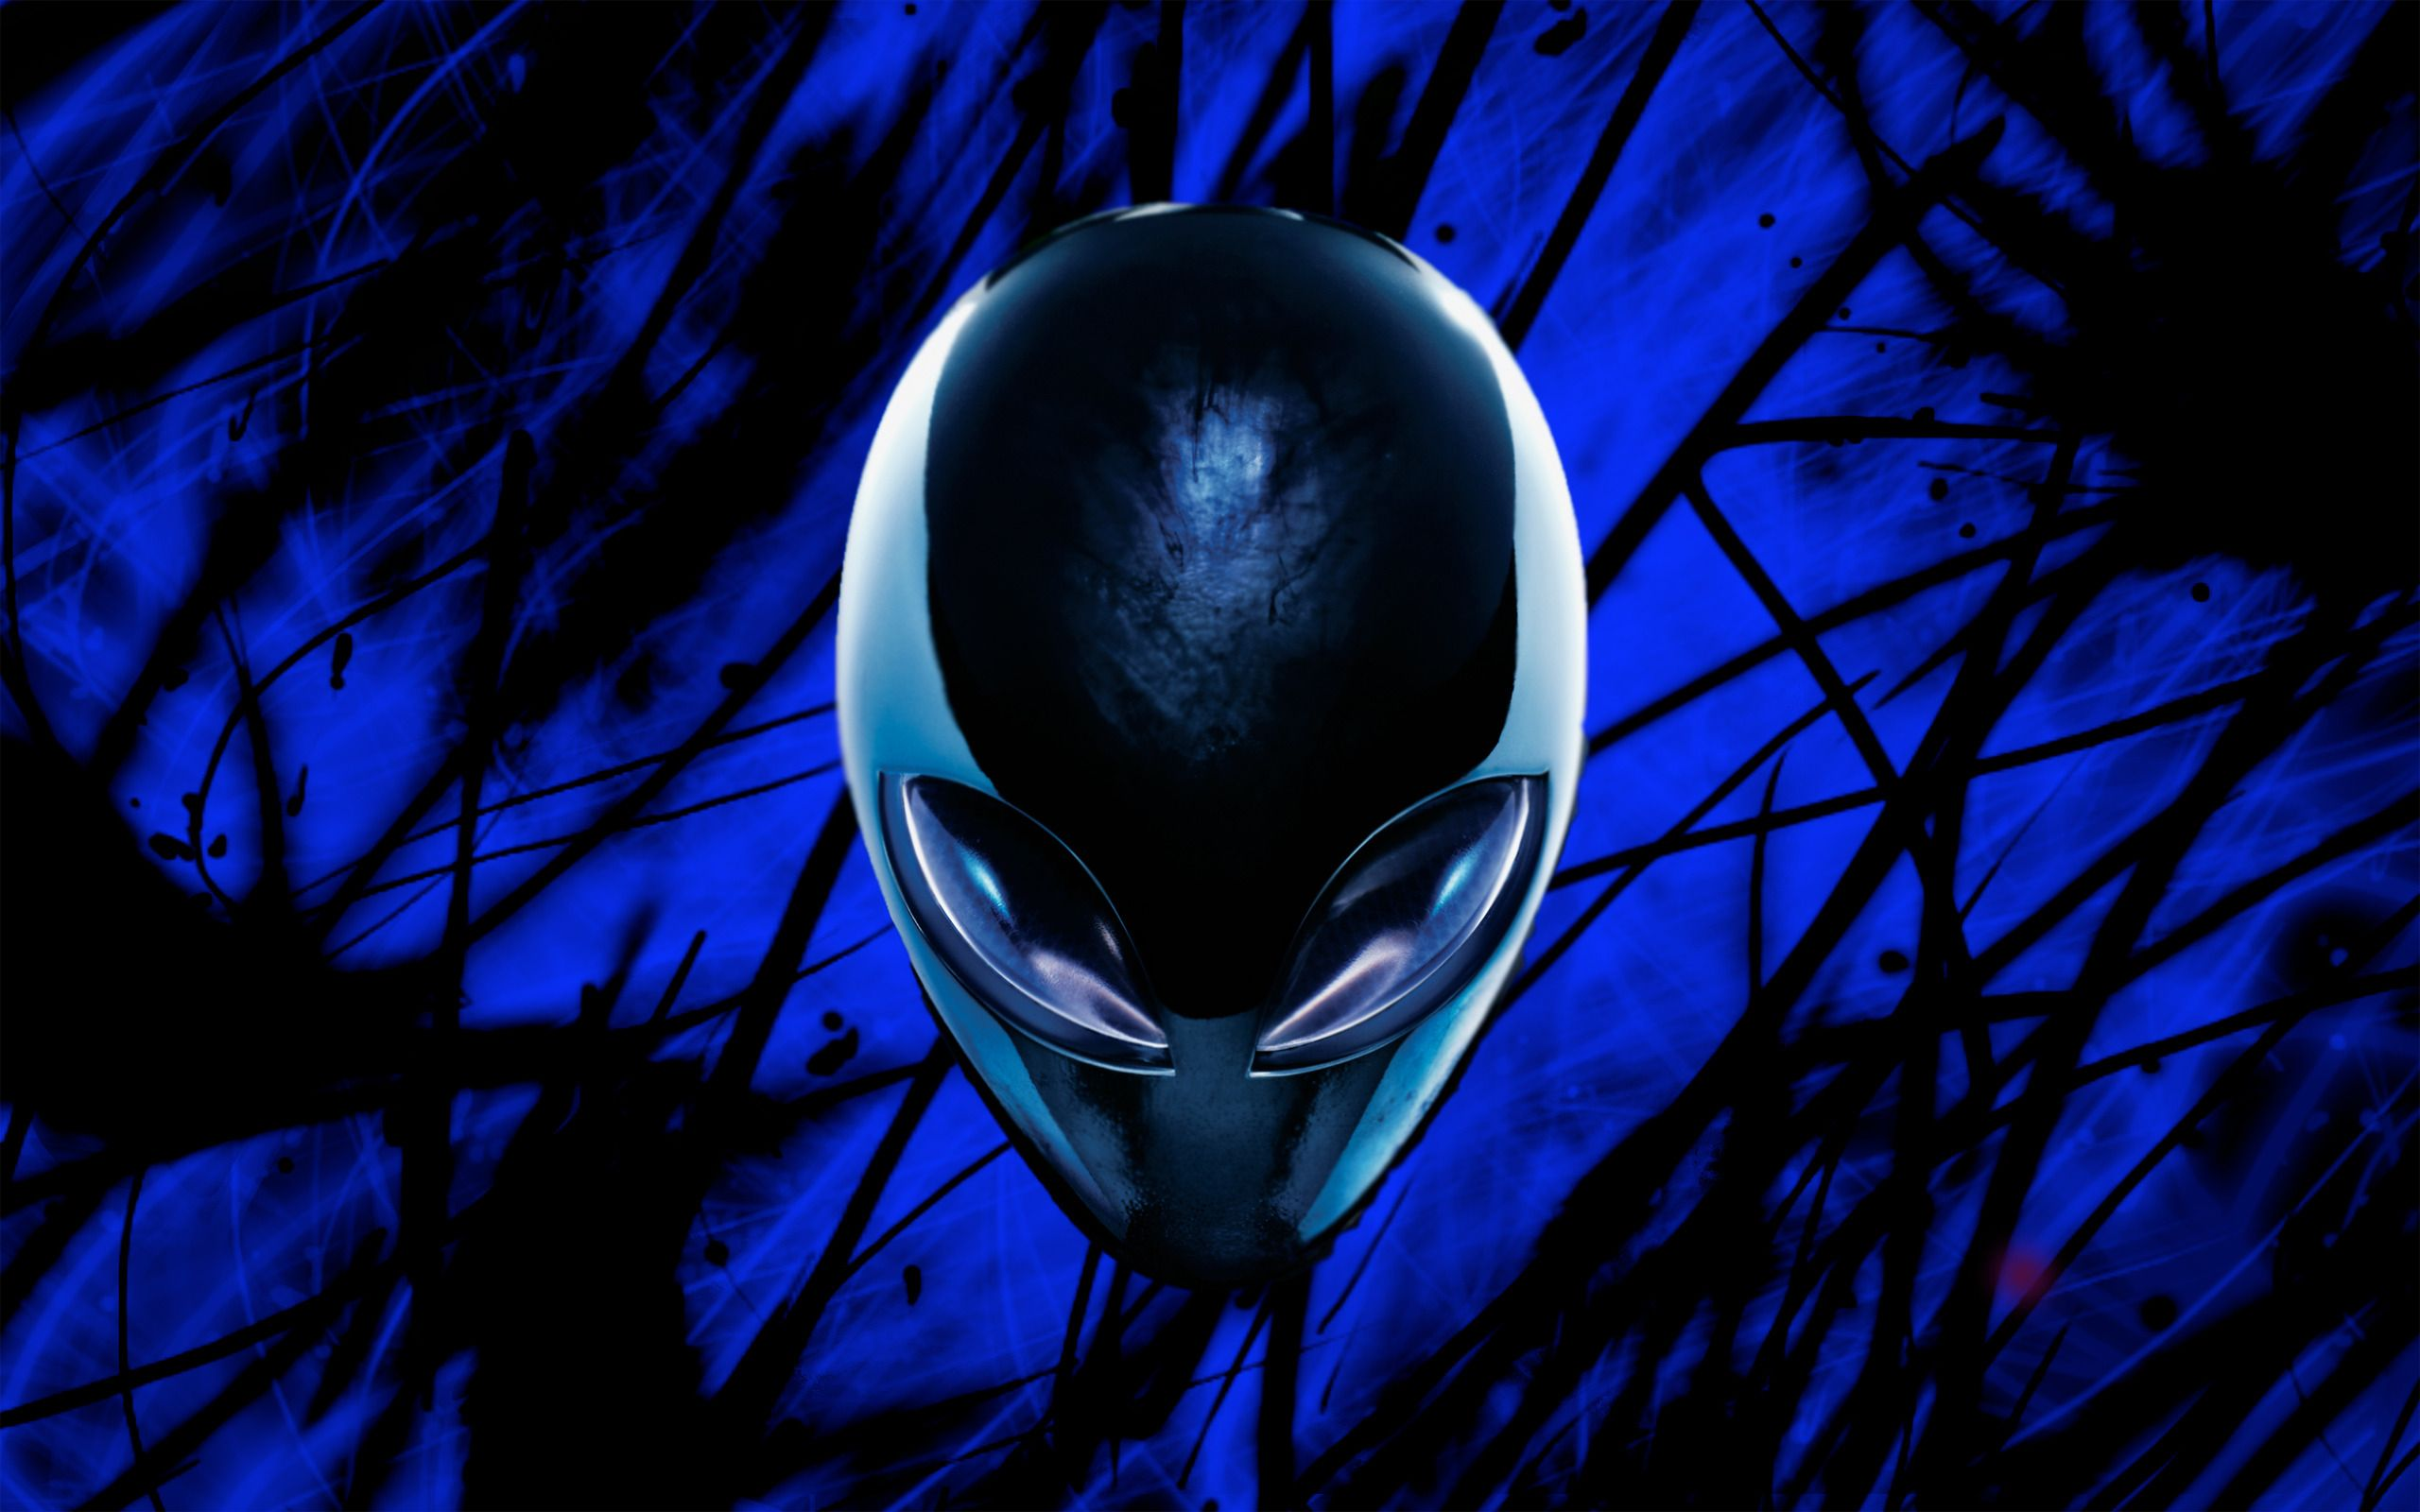 Alienware Beleuchtung Pin By Walt On Walt Alienware 1080p Wallpaper Alien Games